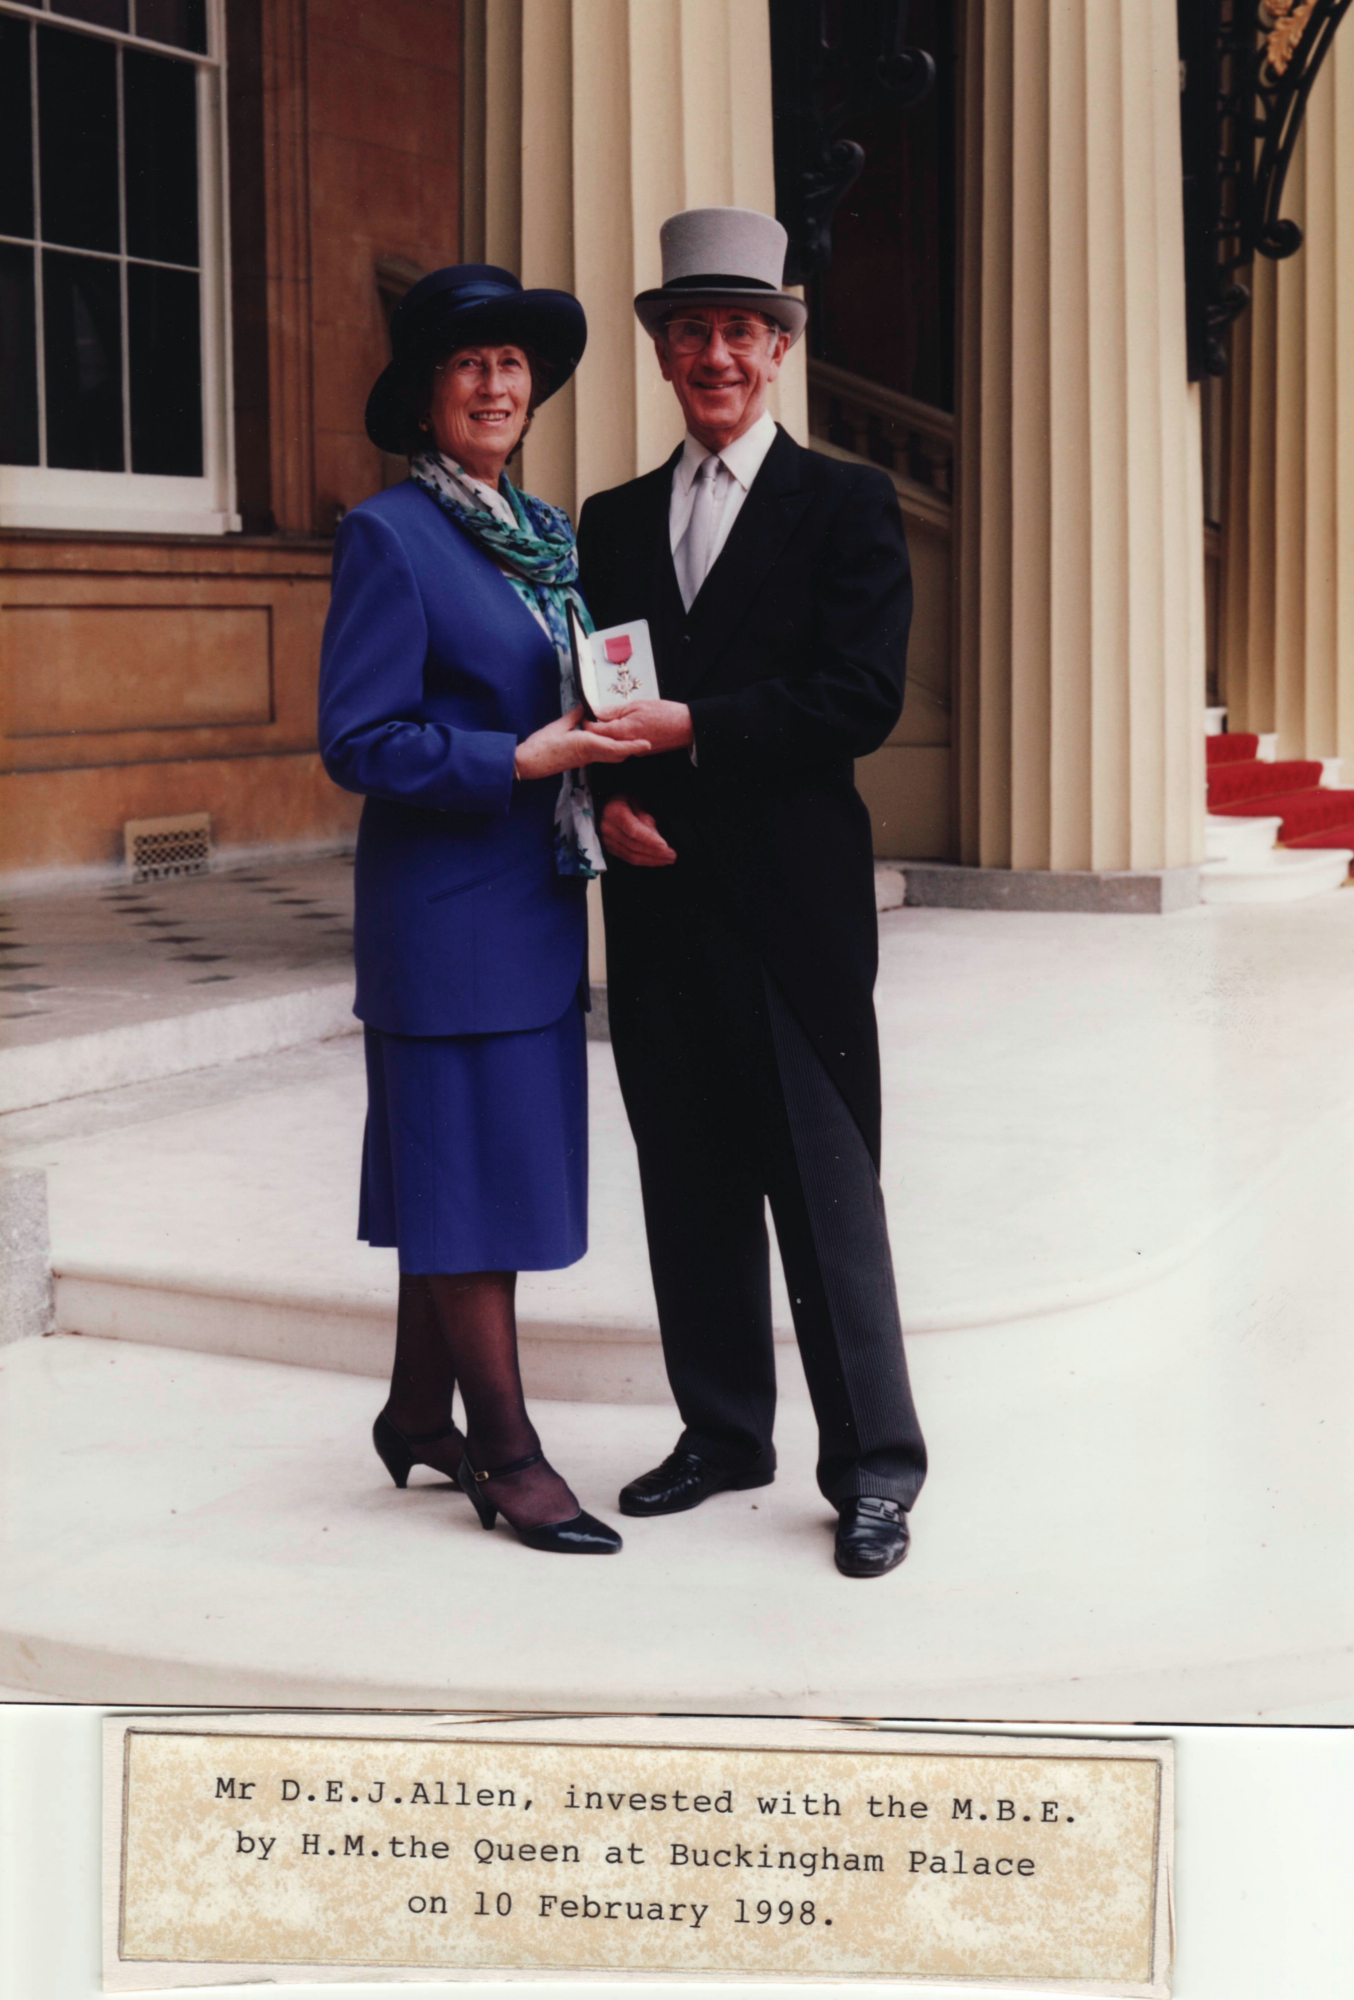 Don Allen & his wife at Buckingham Palace